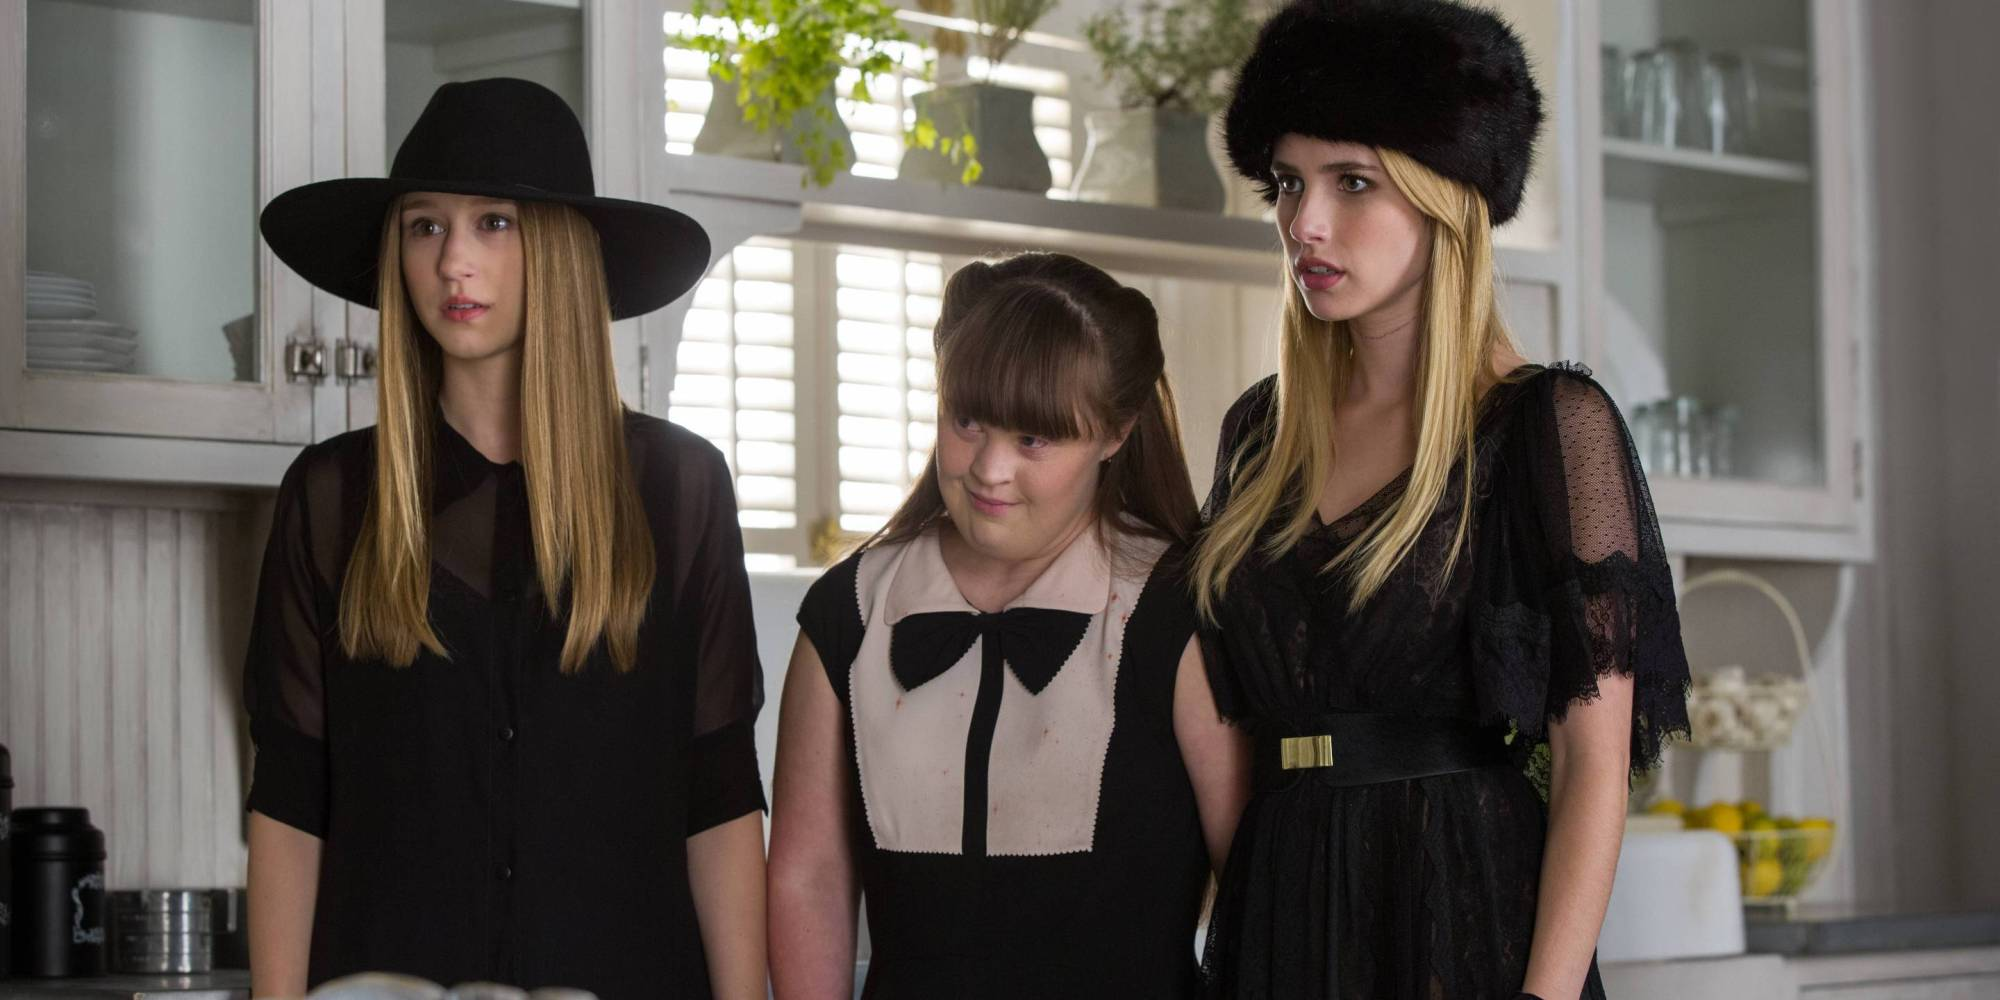 Lou Eyrich Costume Designer Of American Horror Story Gives Us The Scoop On Show S Looks